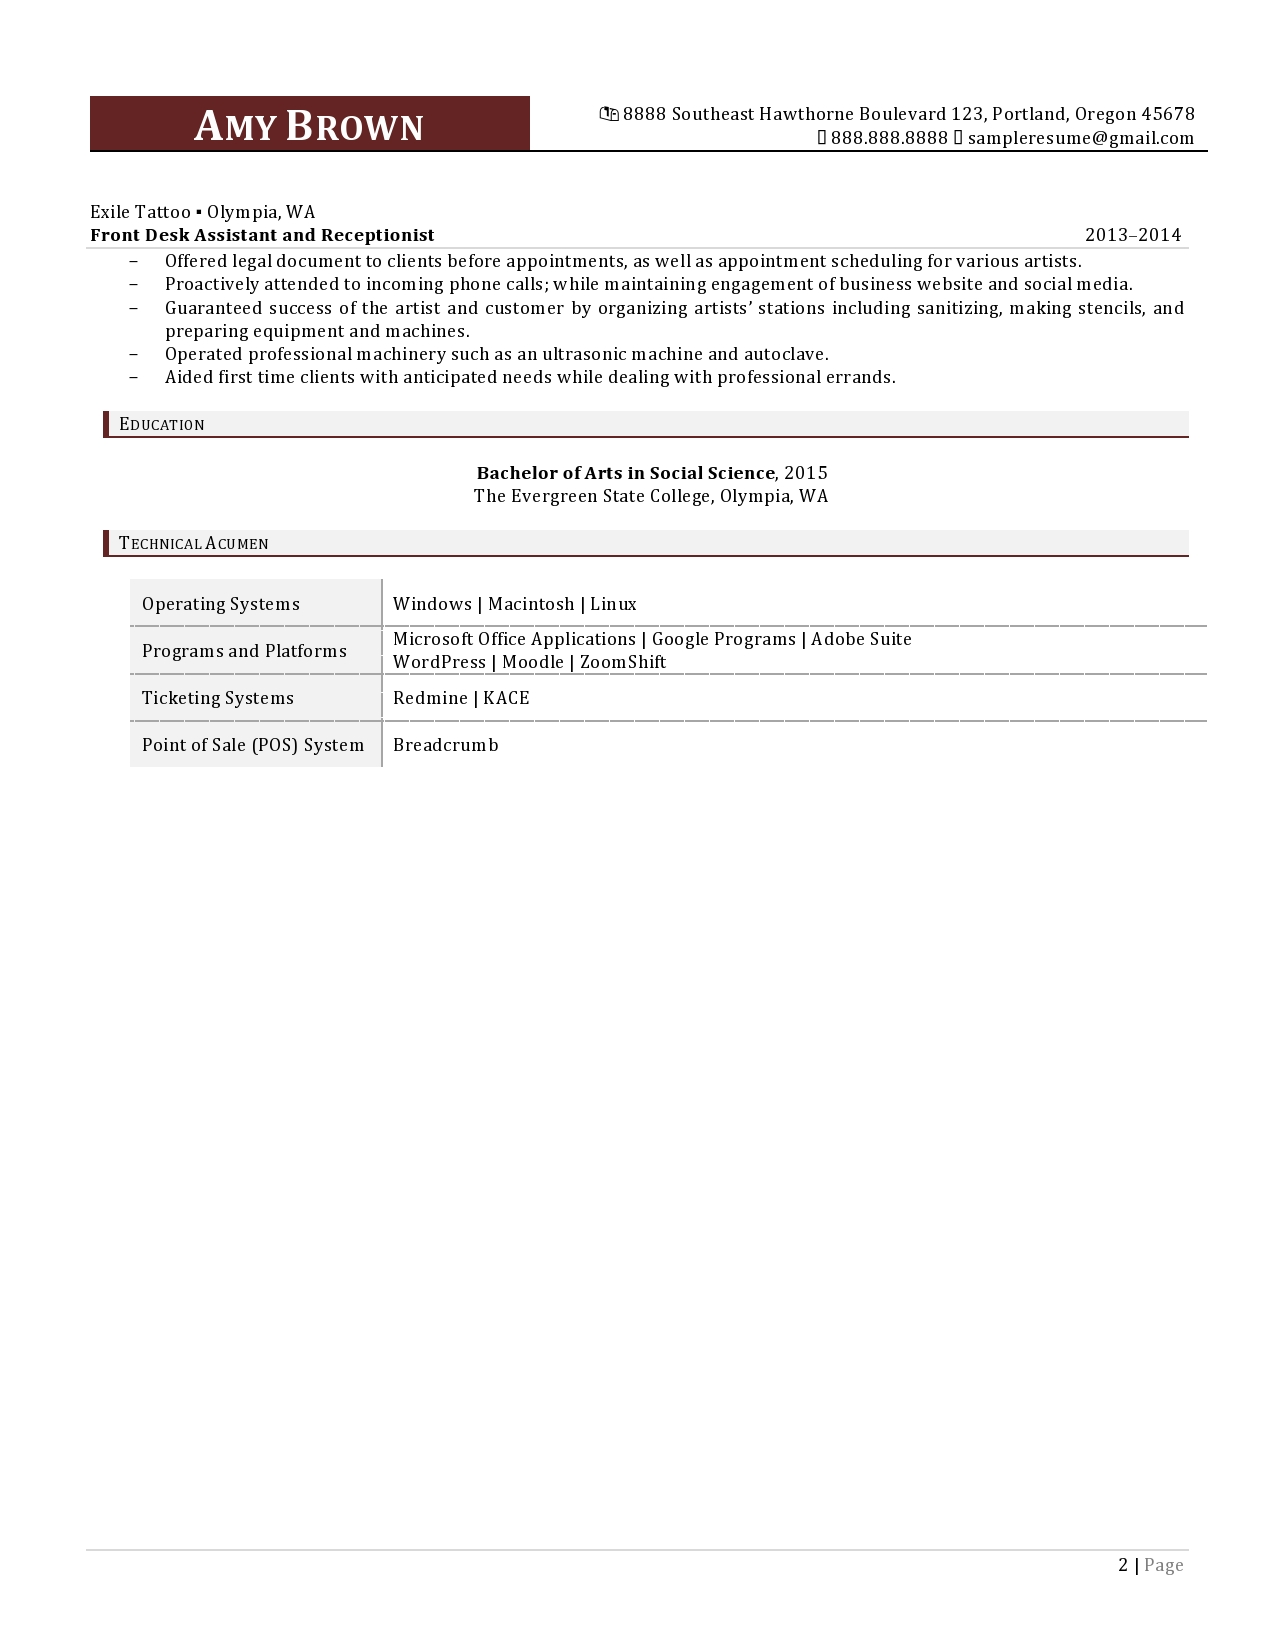 Administrative Assistant Resume Sample page 2